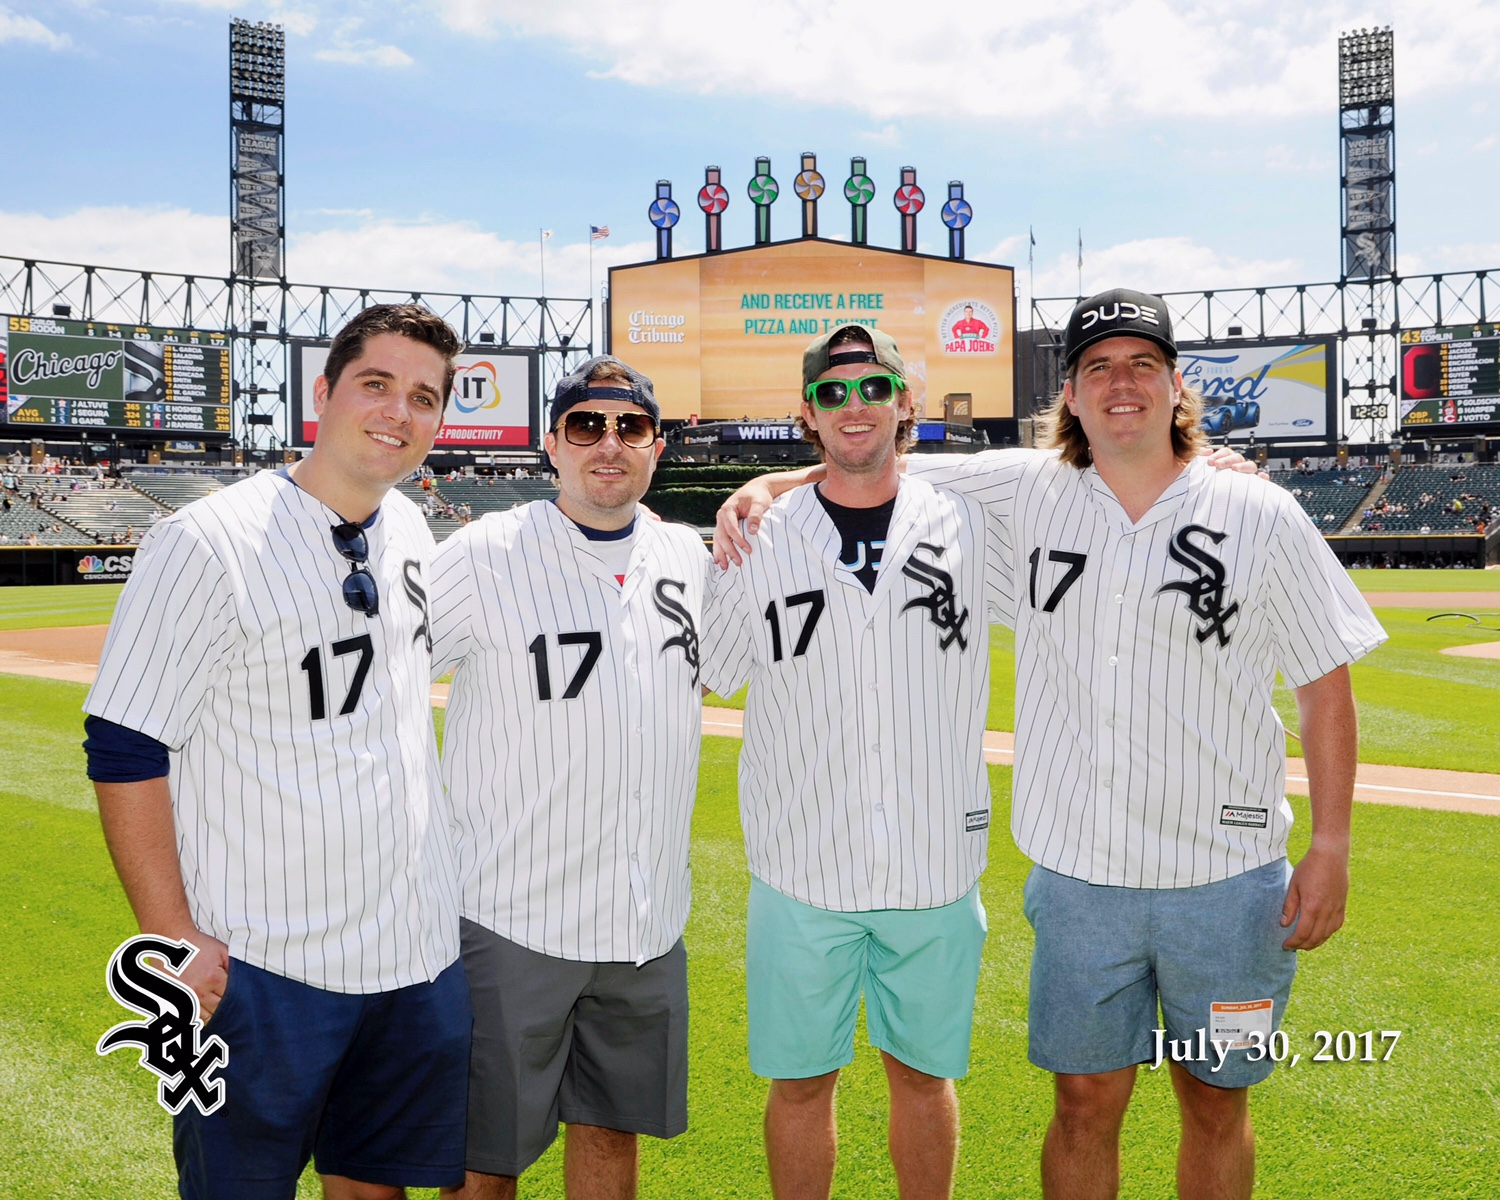 The DUDES throwing out the first pitch at Guaranteed Rate Field